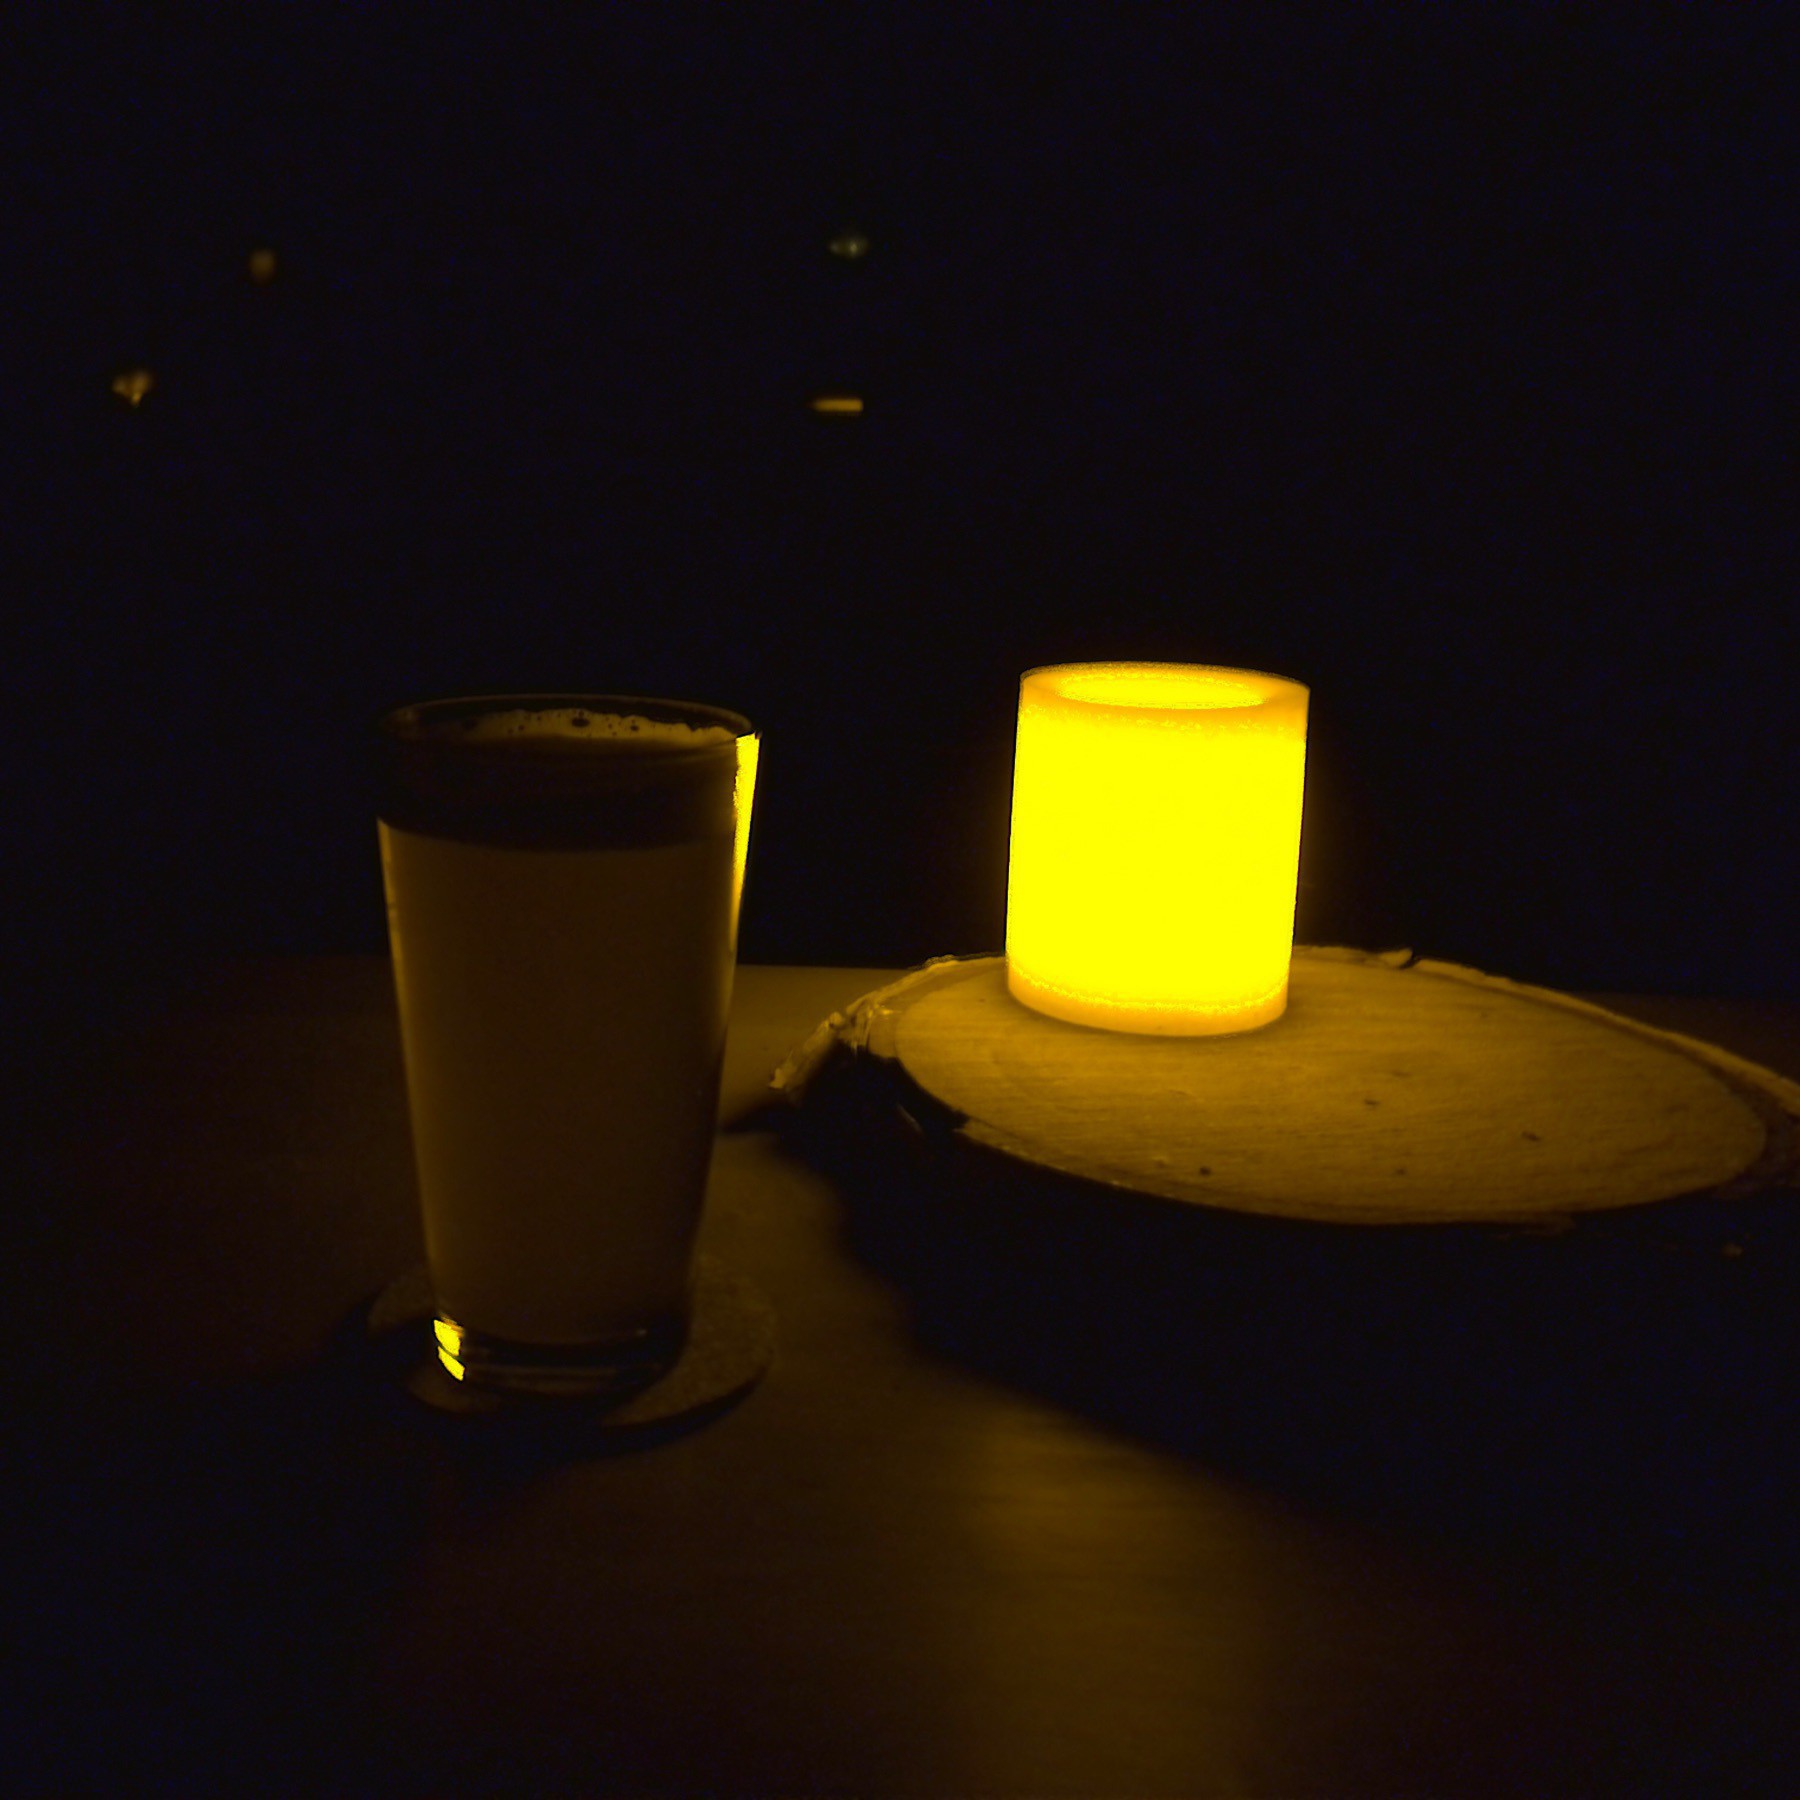 Glass if beer beside LED candle.